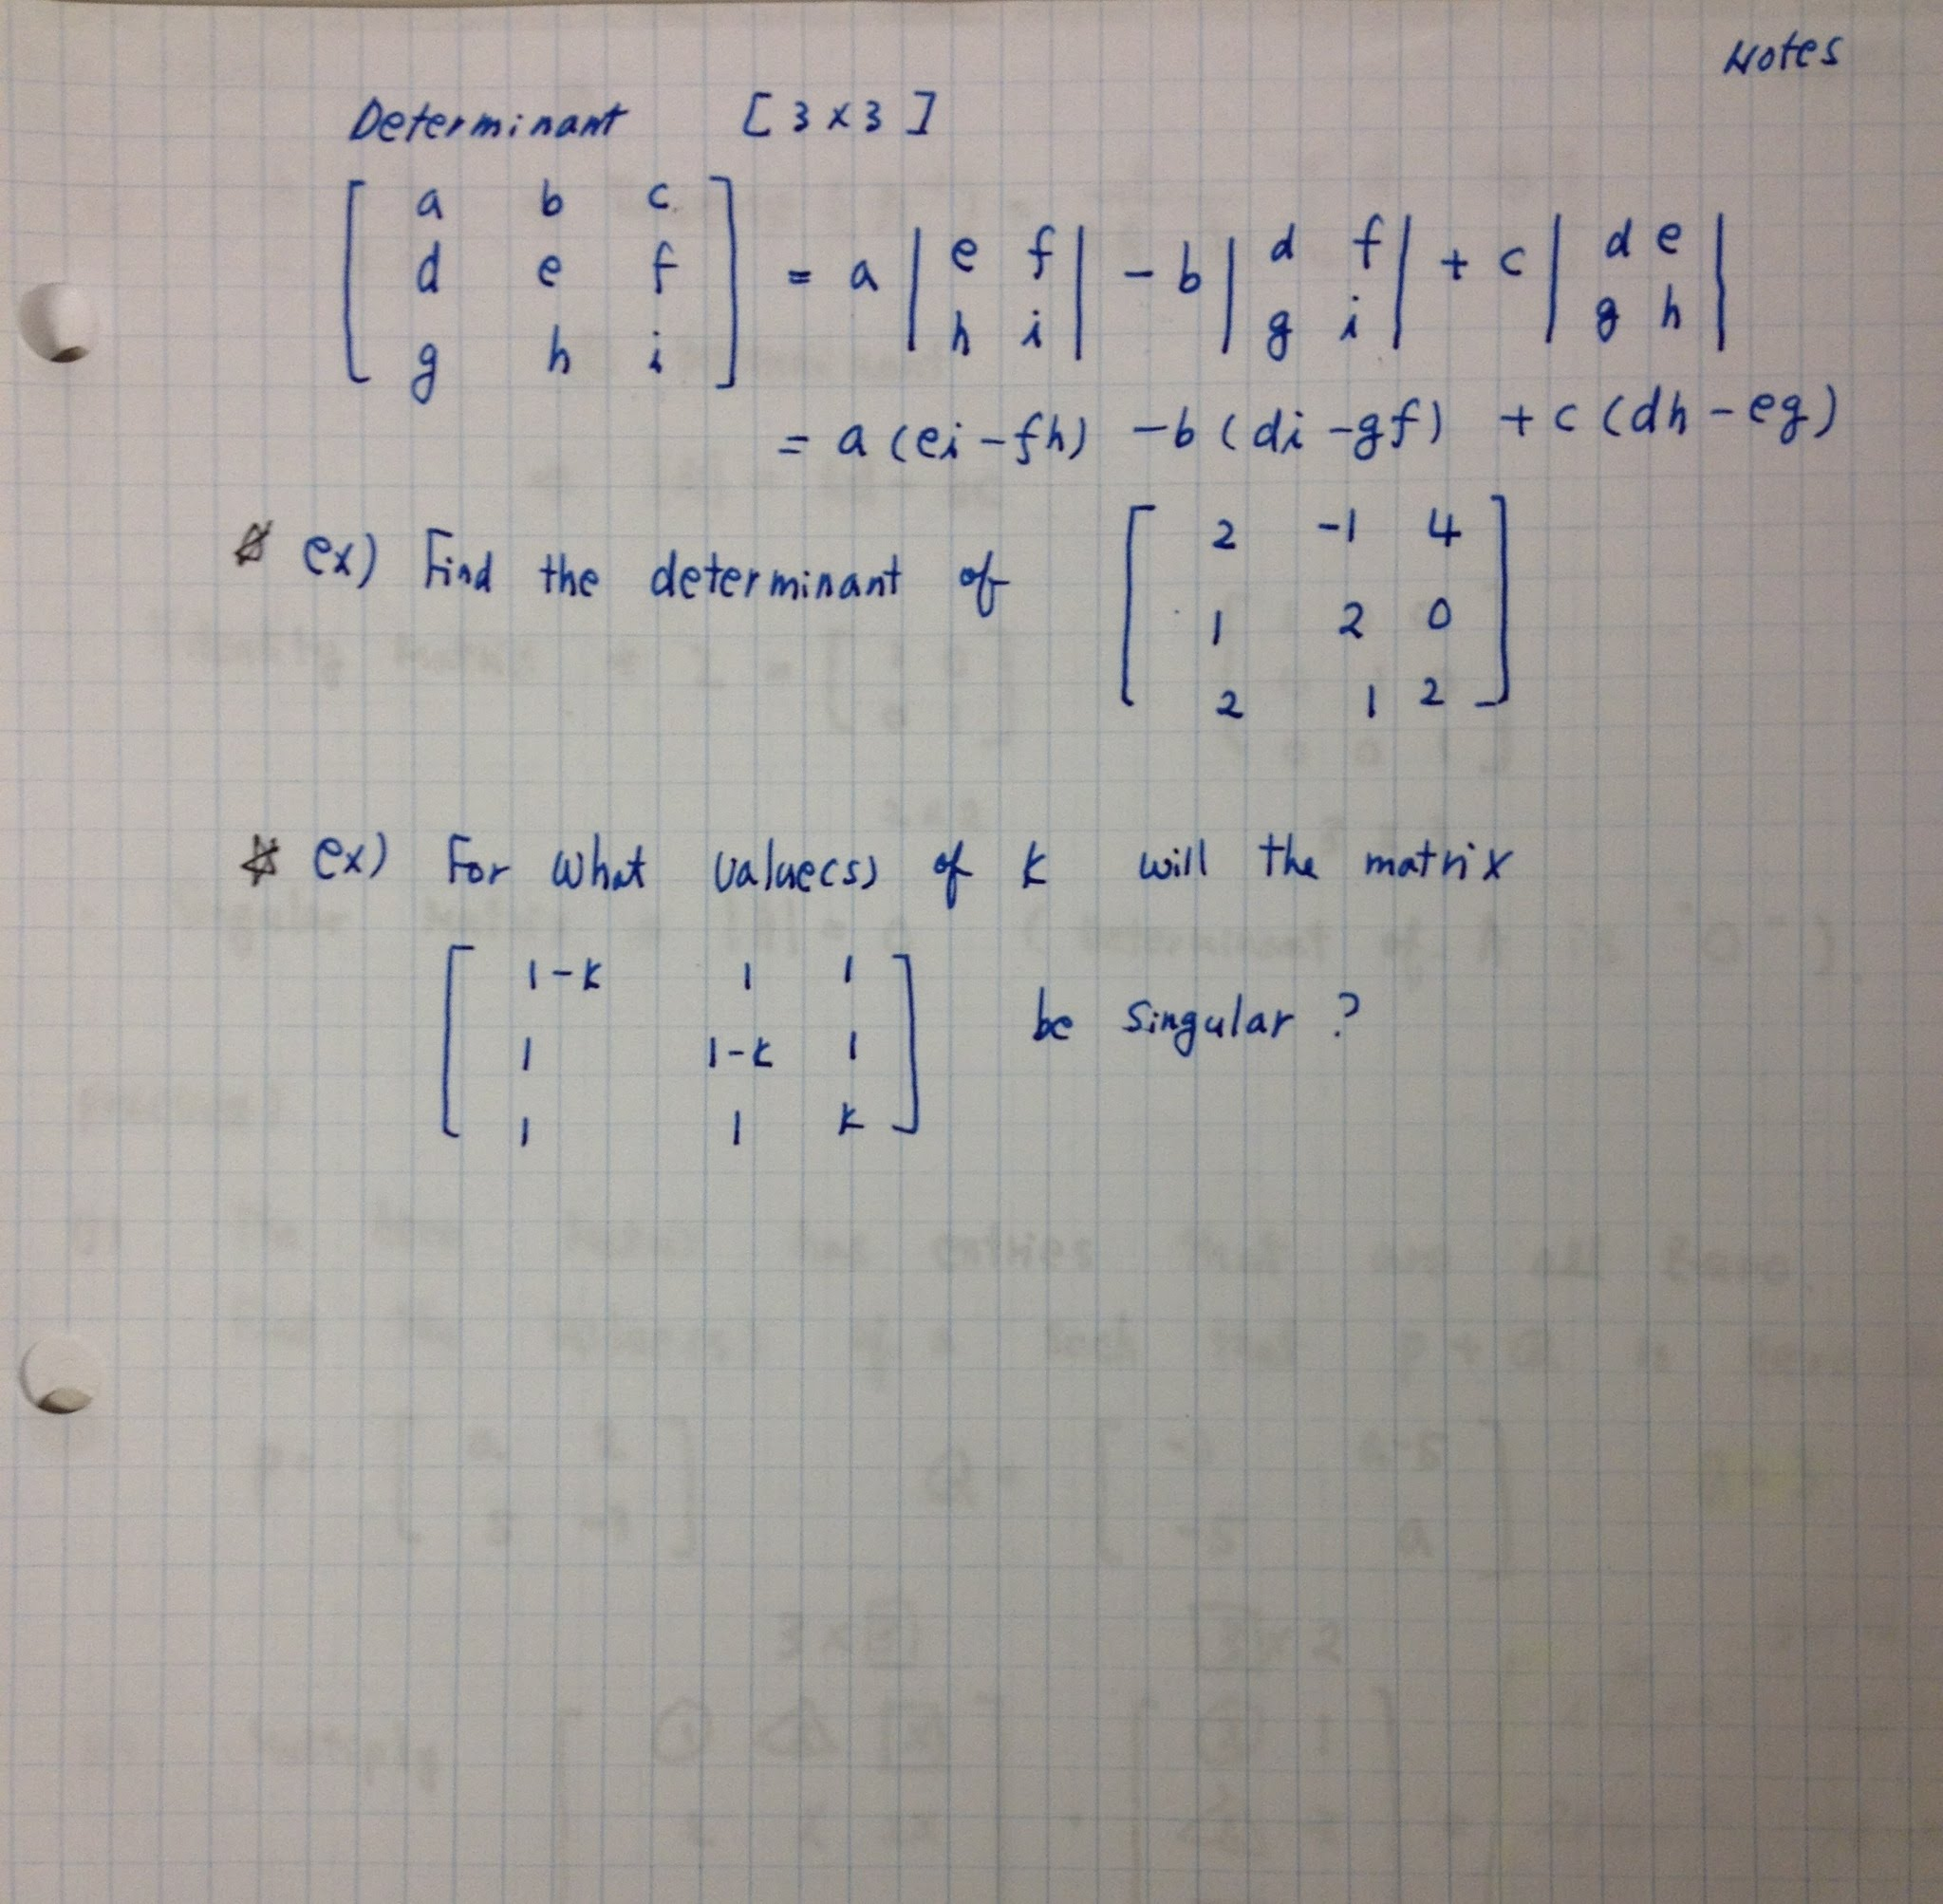 Math methods ii ib calculus mrs shims math class attachments determinant 3 by 3 notes robcynllc Choice Image